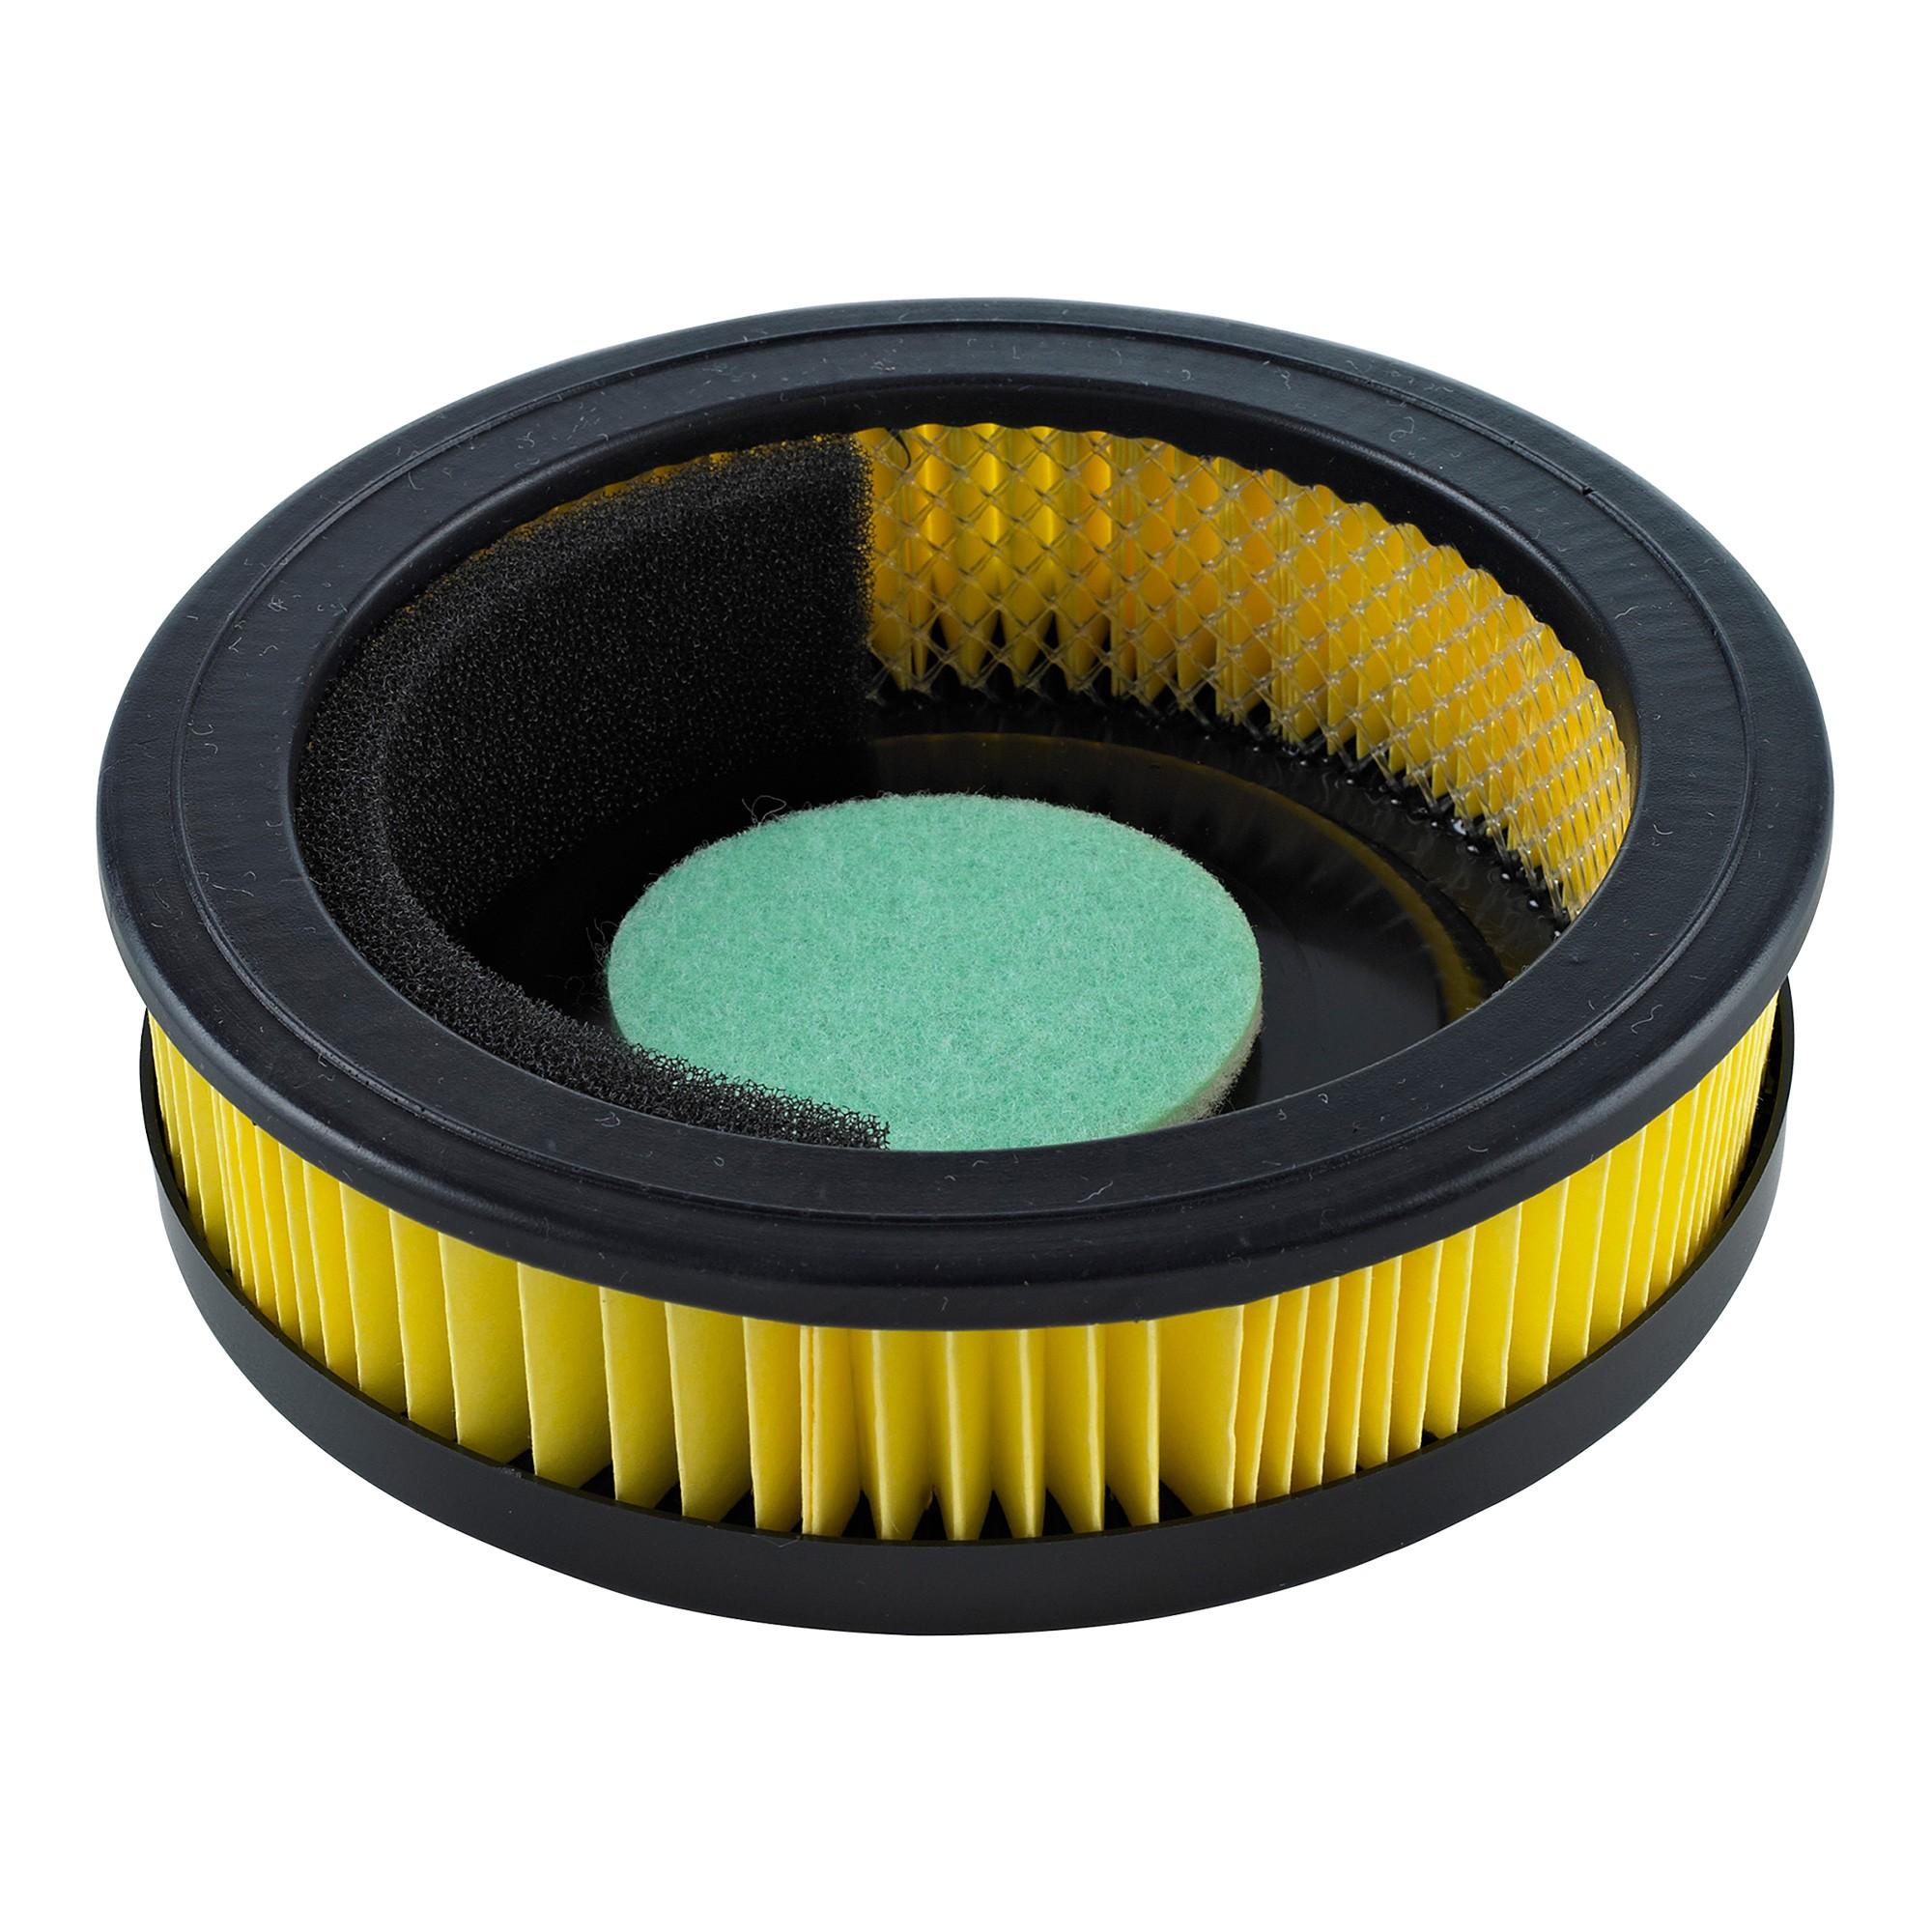 Vax Wash N Dry Filter Pack